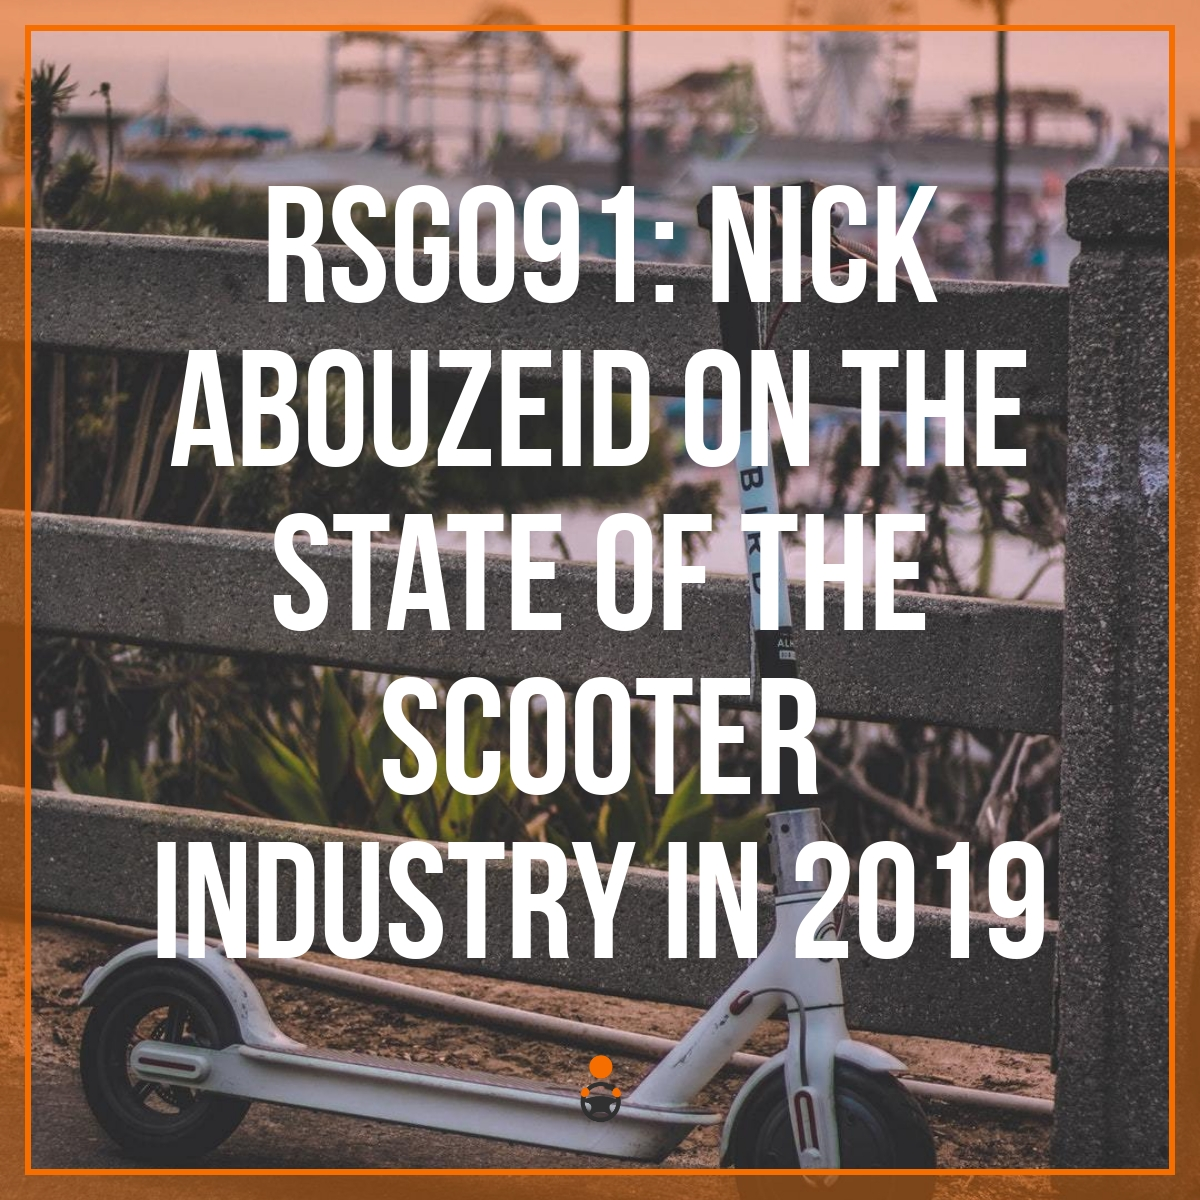 RSG091: Nick Abouzeid on the State of the Scooter Industry in 2019